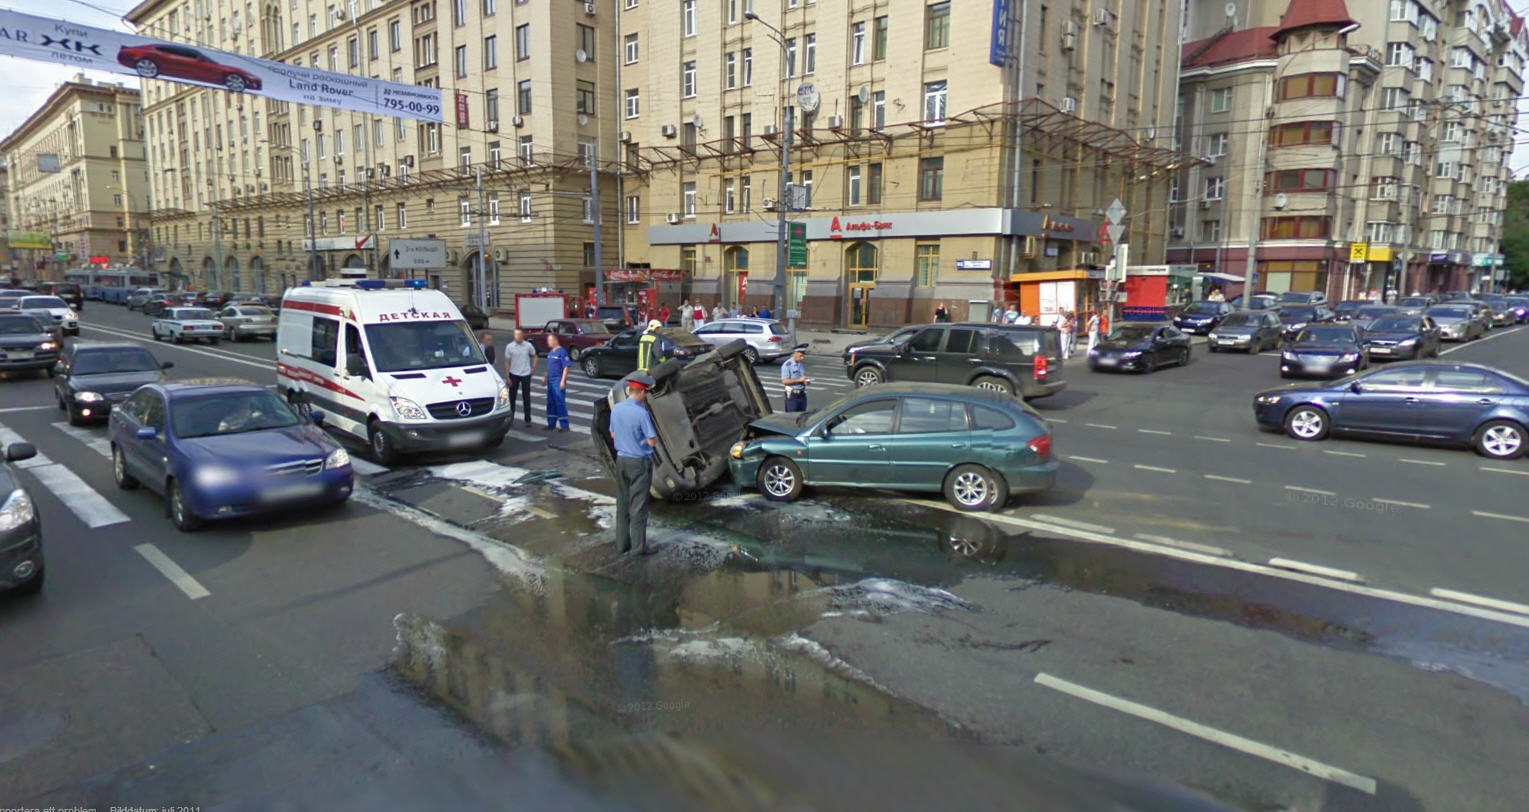 Quite an Accident!  Hope no one was hurt.